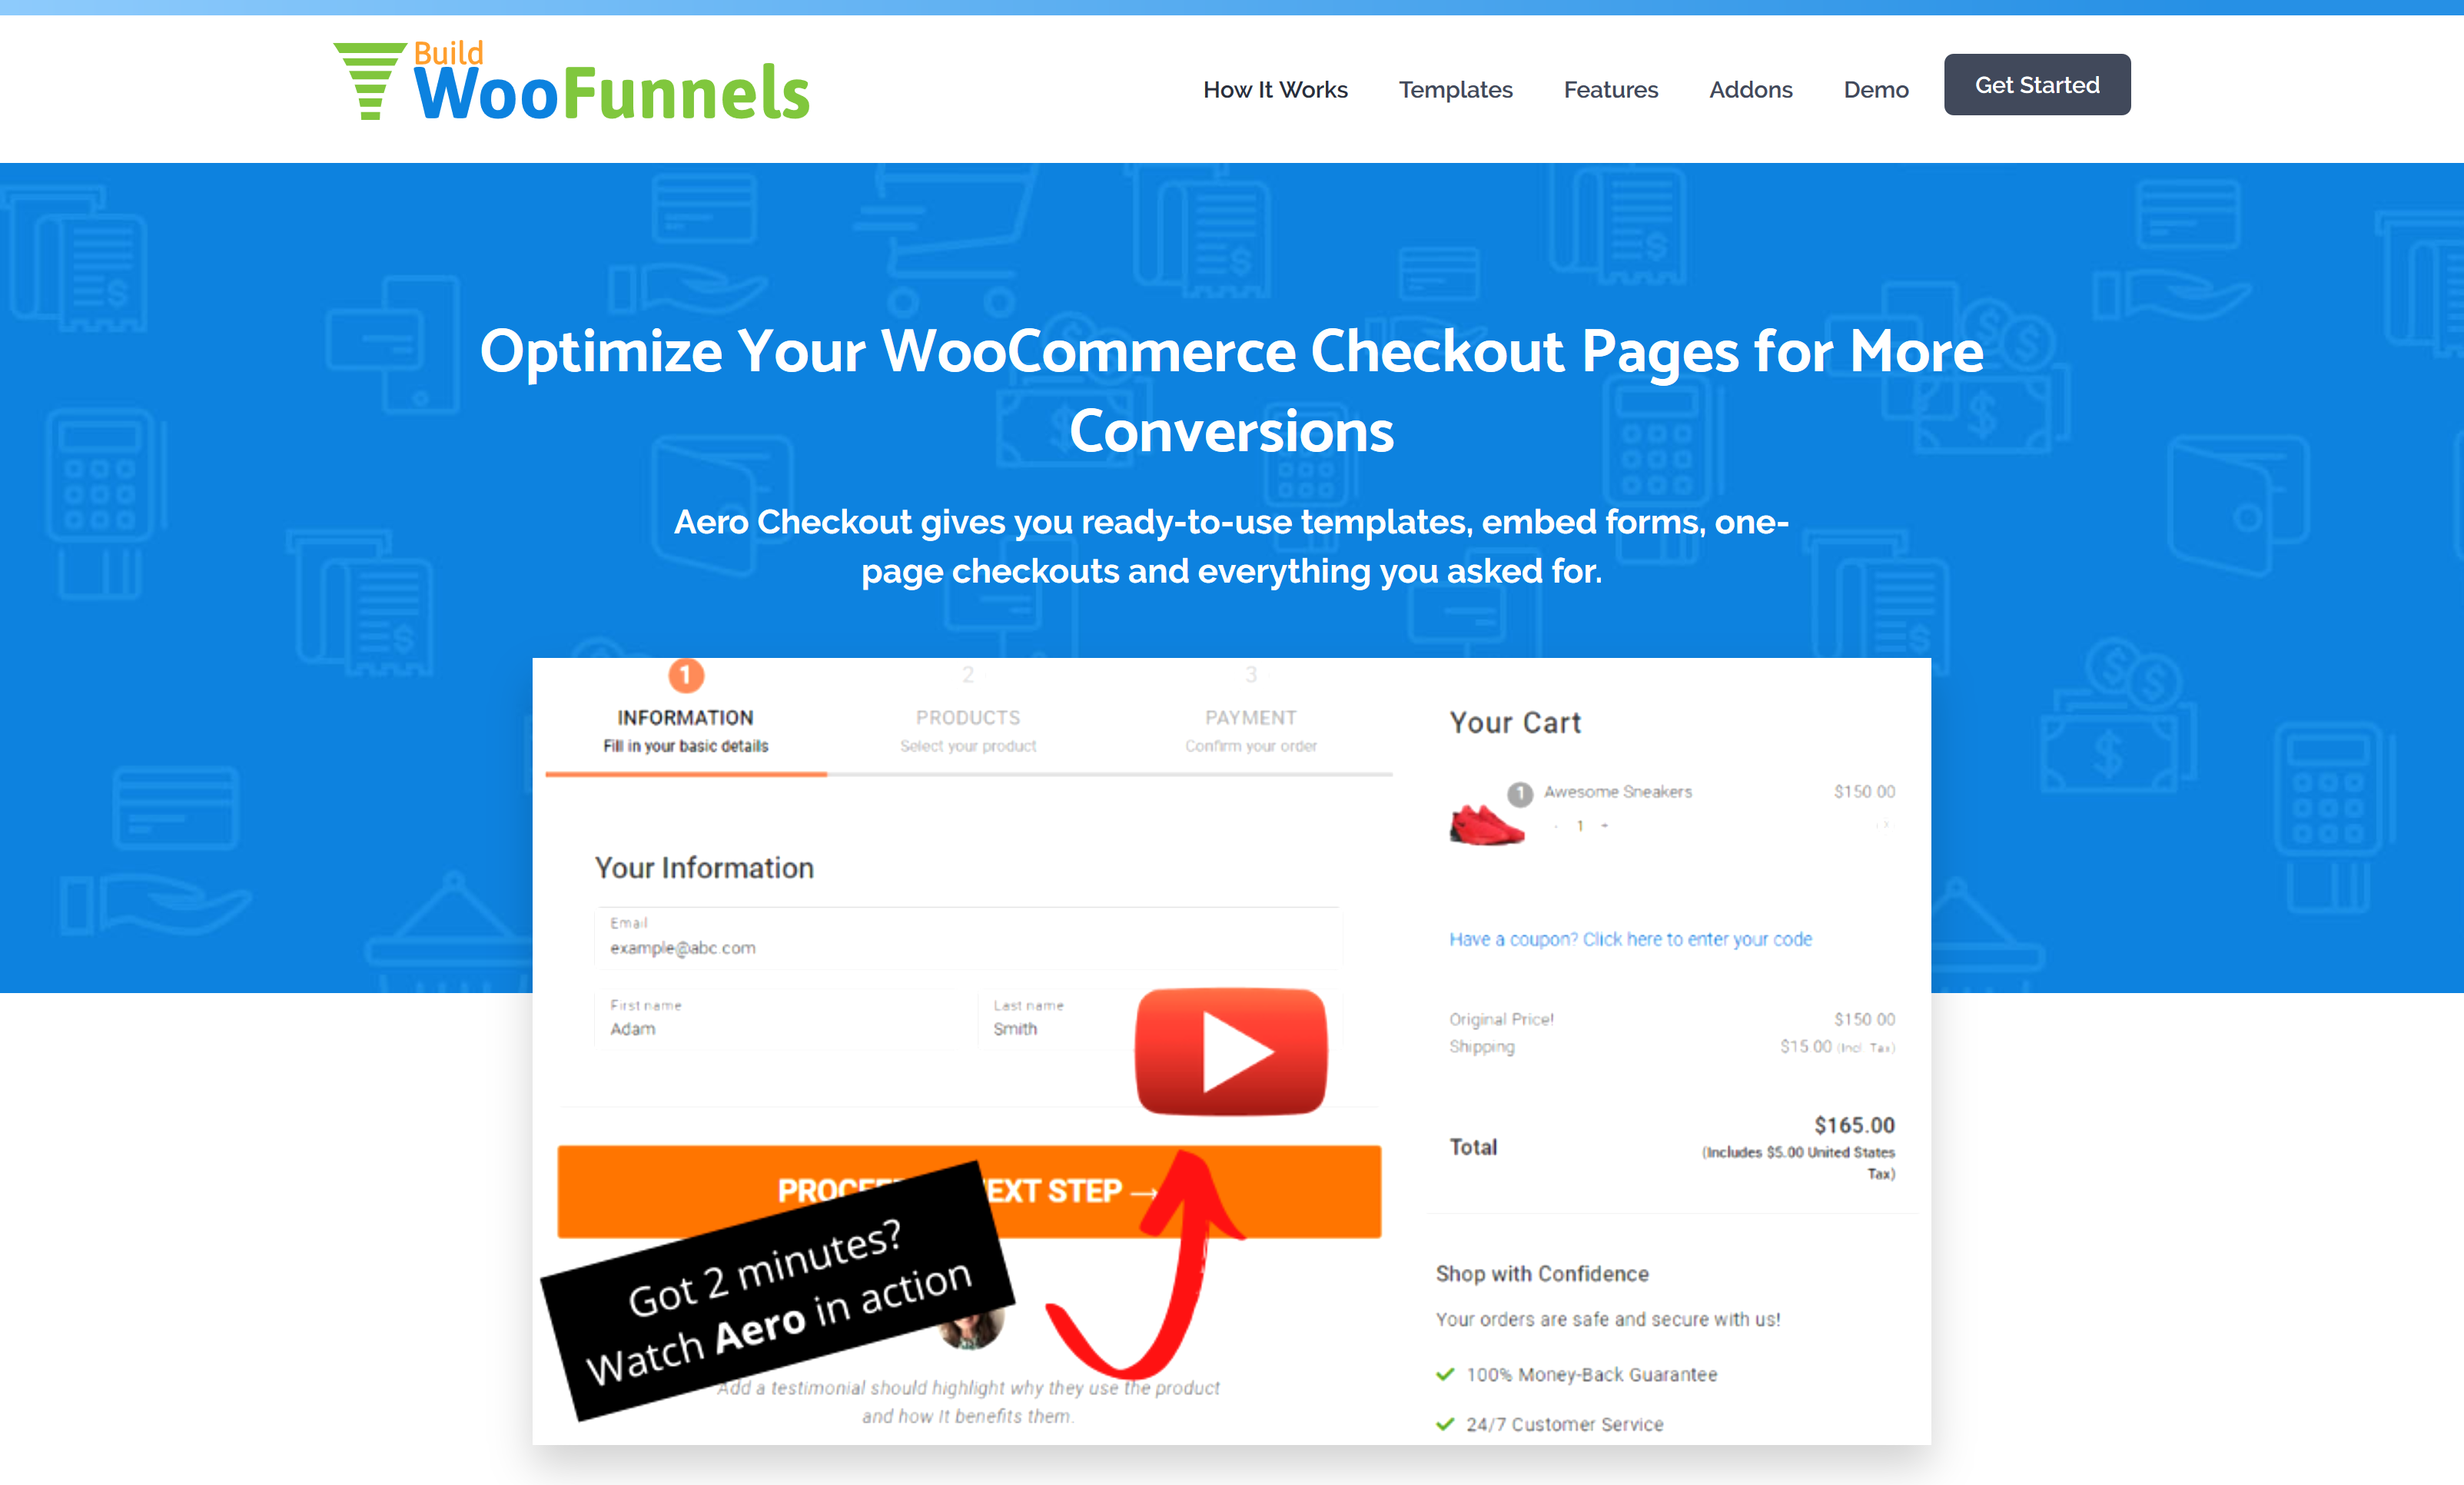 WooFunnels AeroCheckout 2.9.2 (+ All 3 Addons) – Custom WooCommerce Checkout Pages